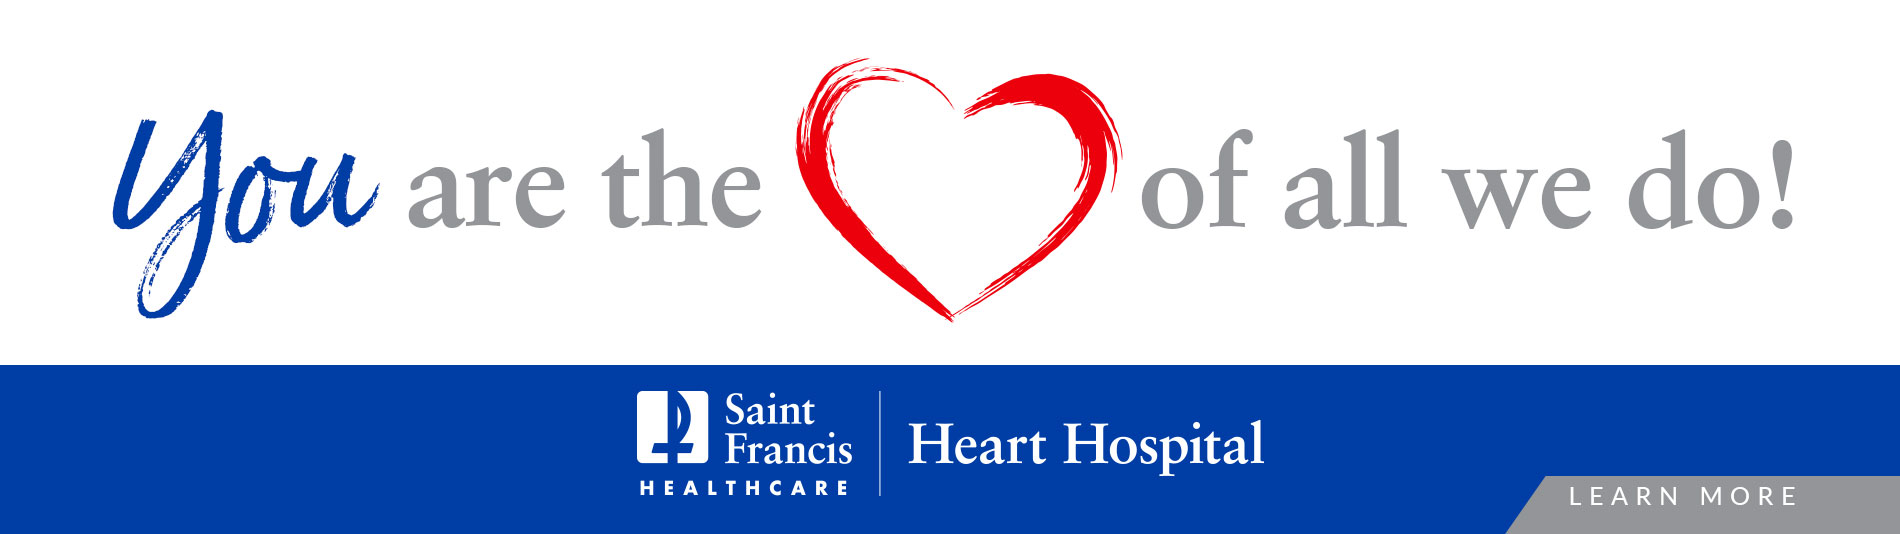 Saint Francis Heart Hospital - You Are the Heart of All We Do. Click to learn more.